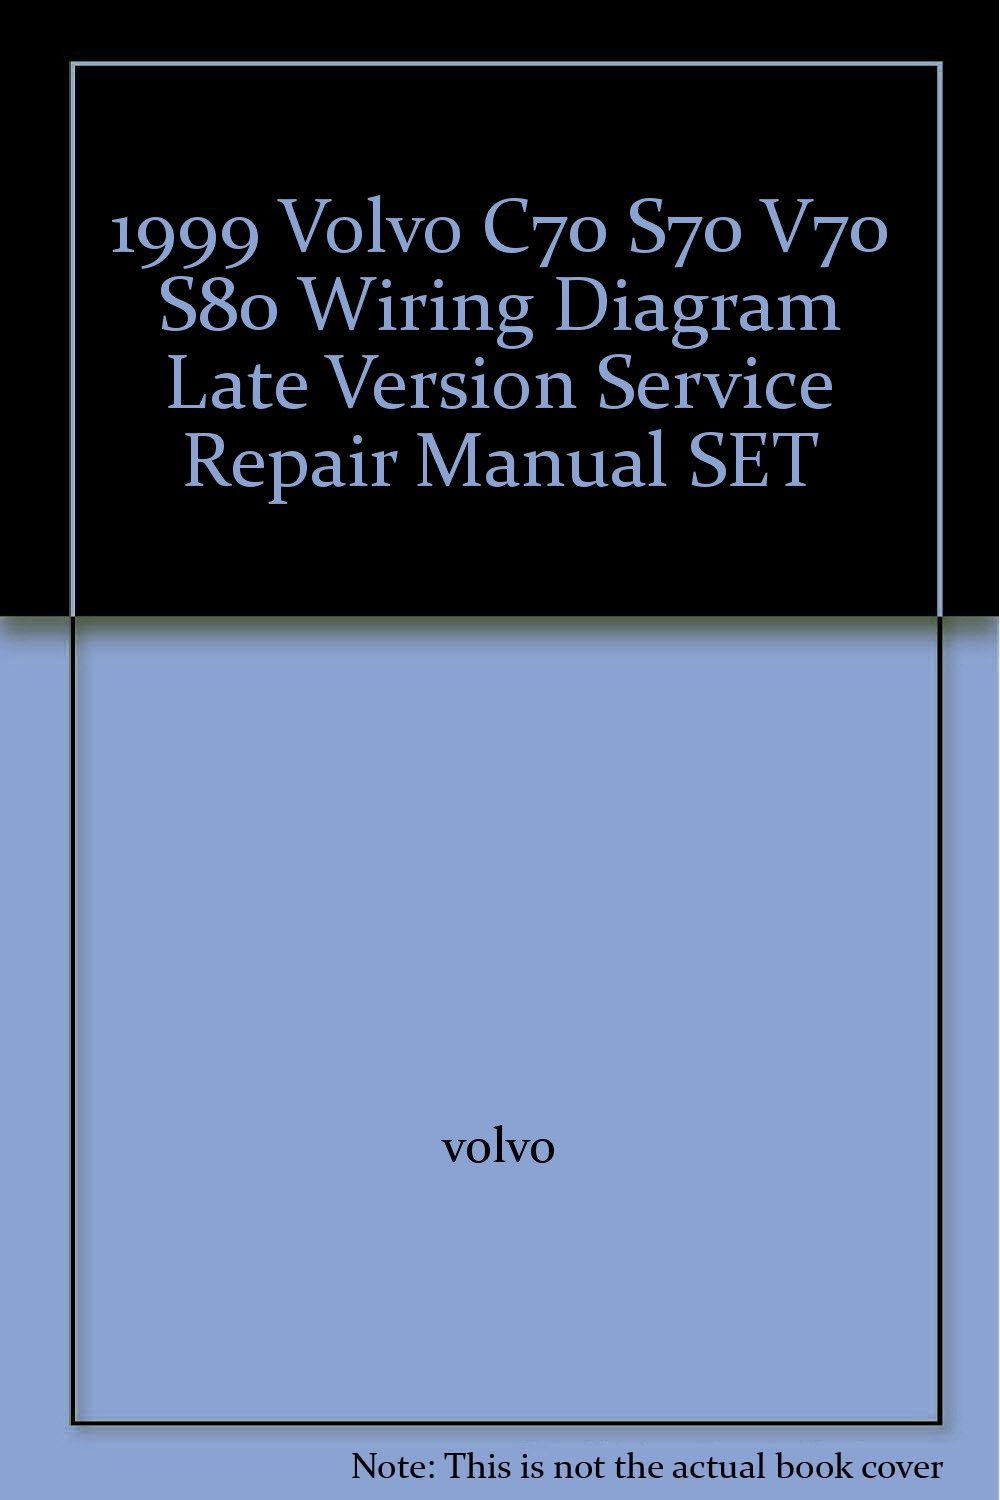 1999 volvo c70 s70 v70 s80 wiring diagram late version service repair  manual set paperback – 1999